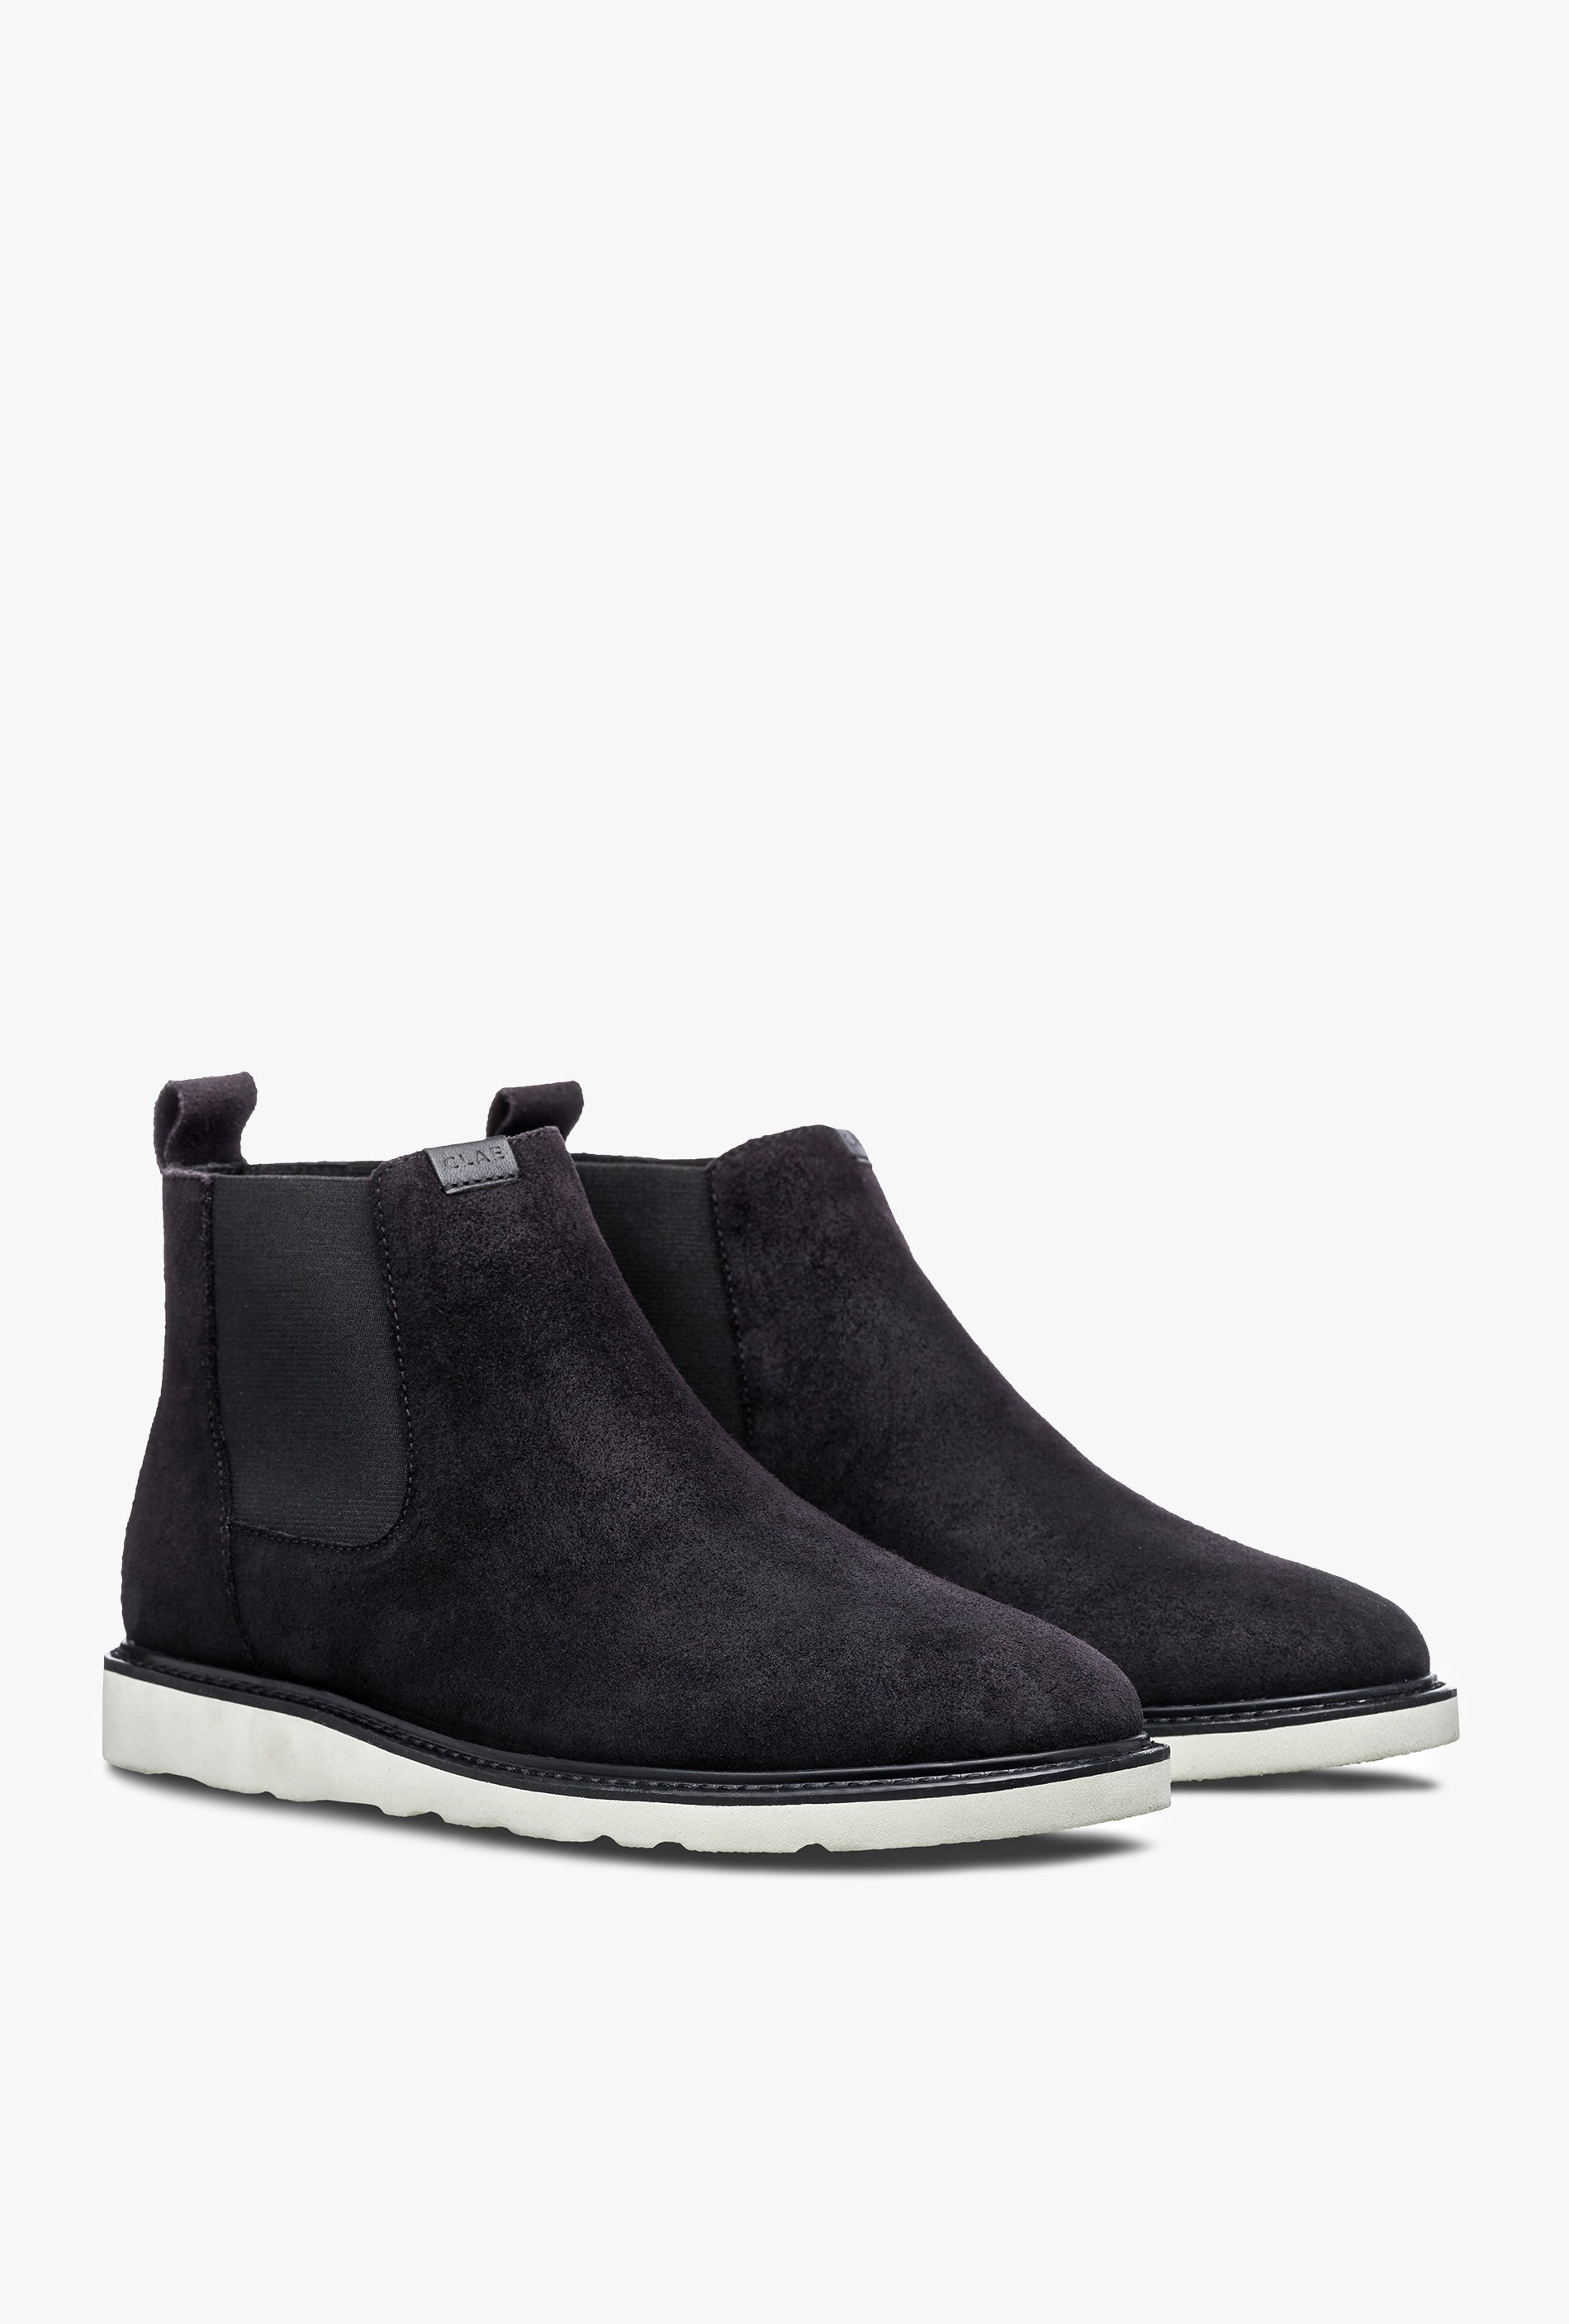 Richards Vibram Chelsea Boot